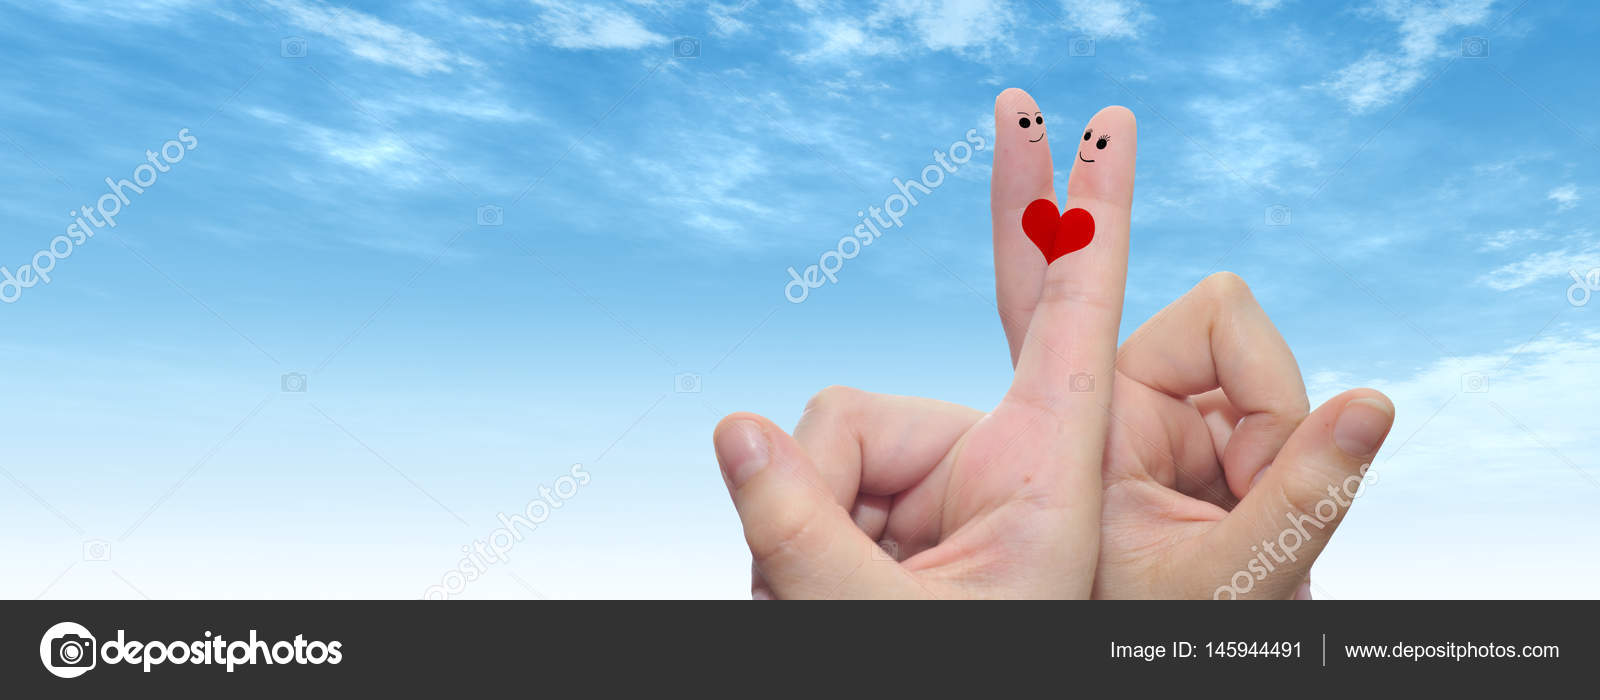 Fingers With Heart And Faces Stock Photo Design36 145944491